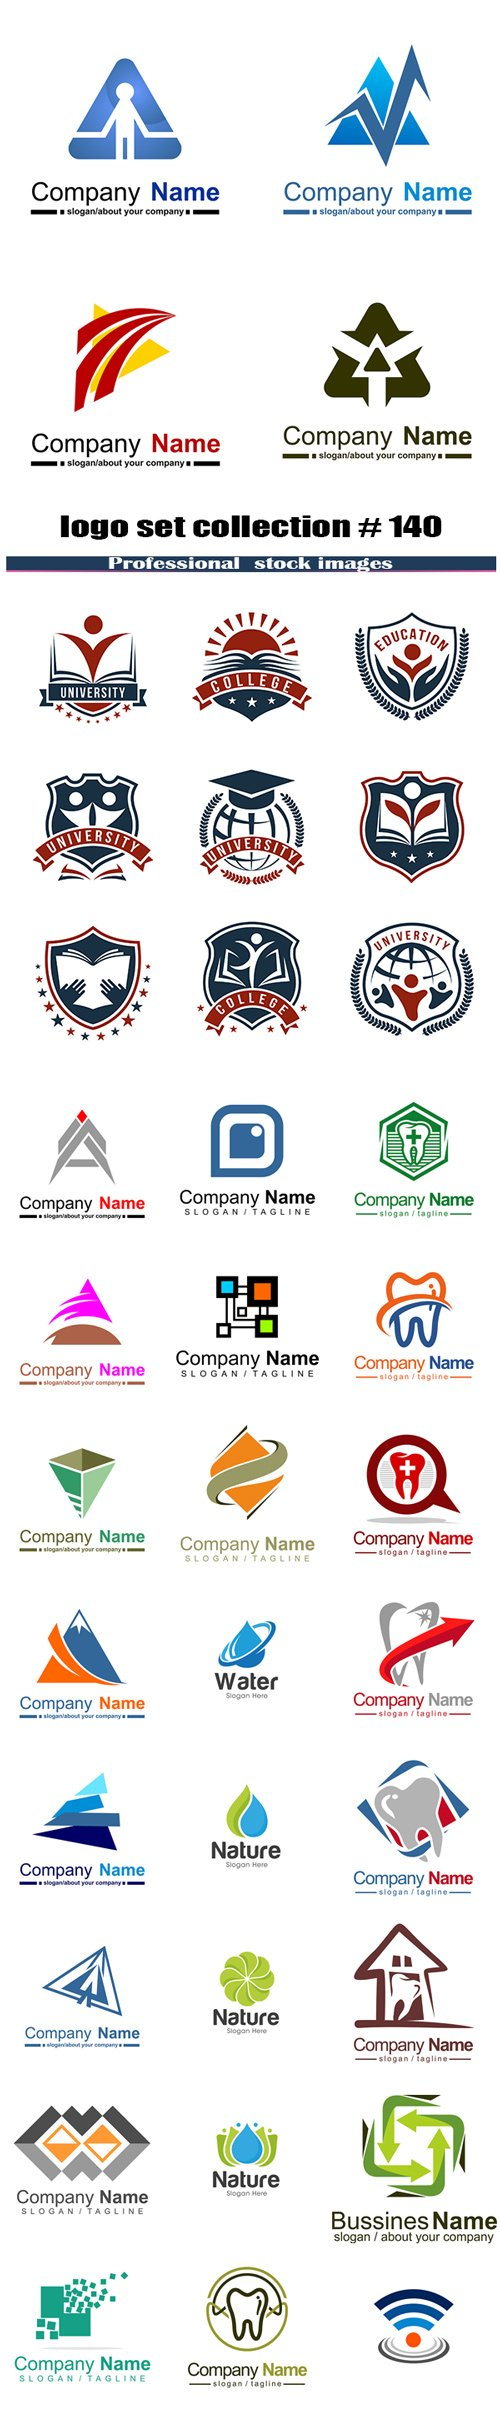 logo set collection # 140